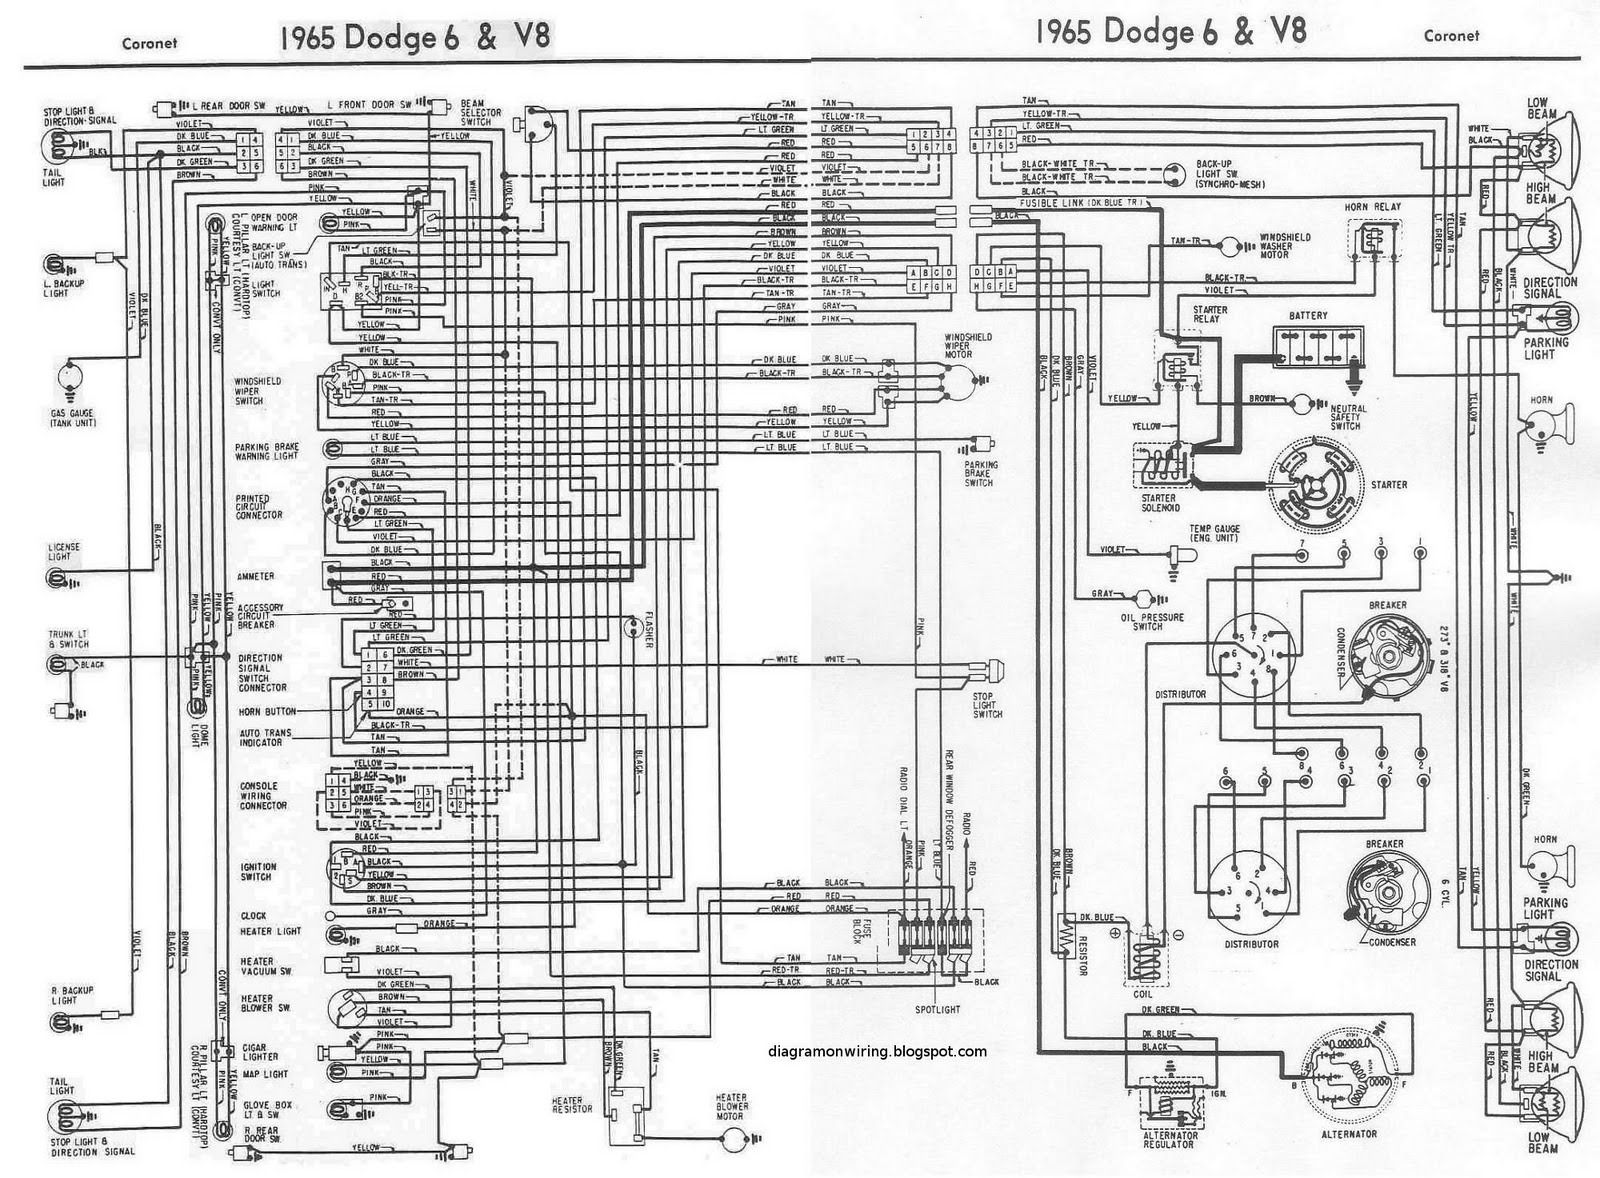 1967 Dodge Coronet Neutral Safety Switch Wiring Diagrams Chrysler Starter Relay Diagram 6 And V8 1965 Complete All Connector Dakota